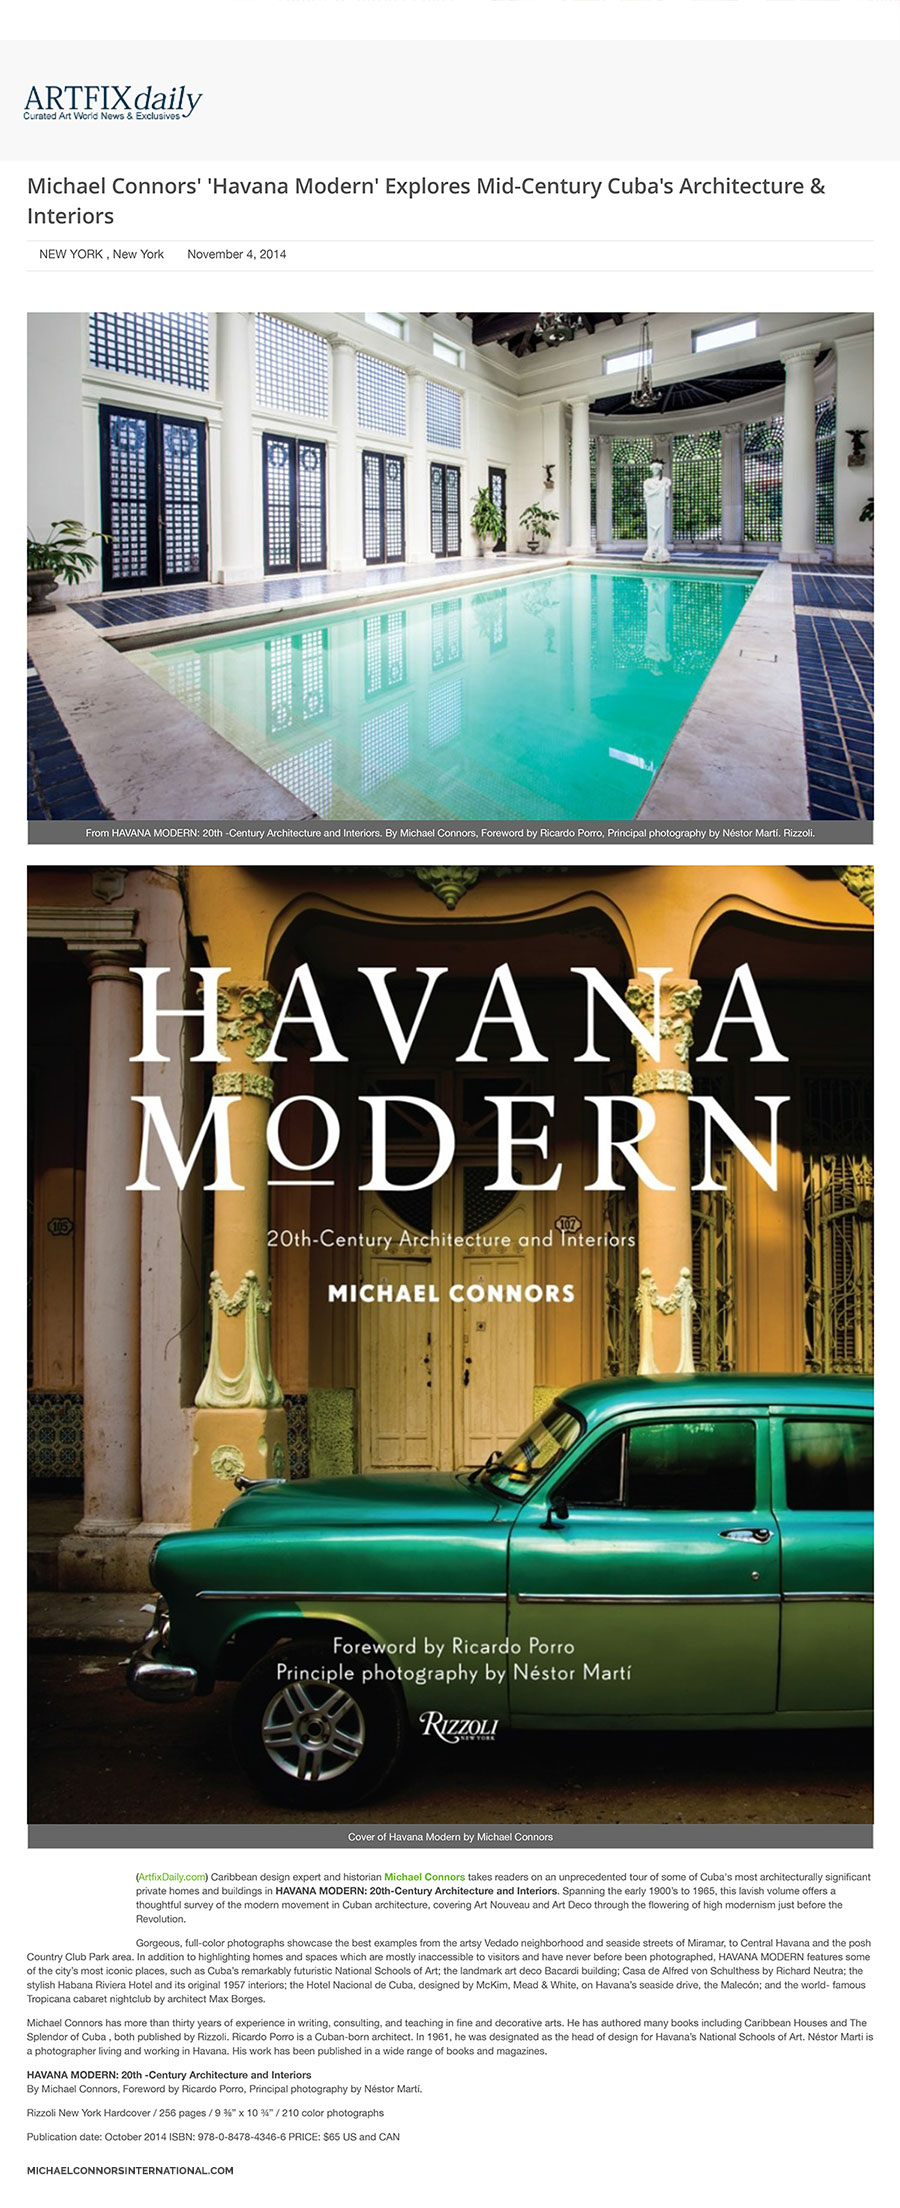 Michael-Connors-Havana-Modern-Explores-Mid-Century-Cuba-Artwire-Press-Release-from-ArtfixDaily